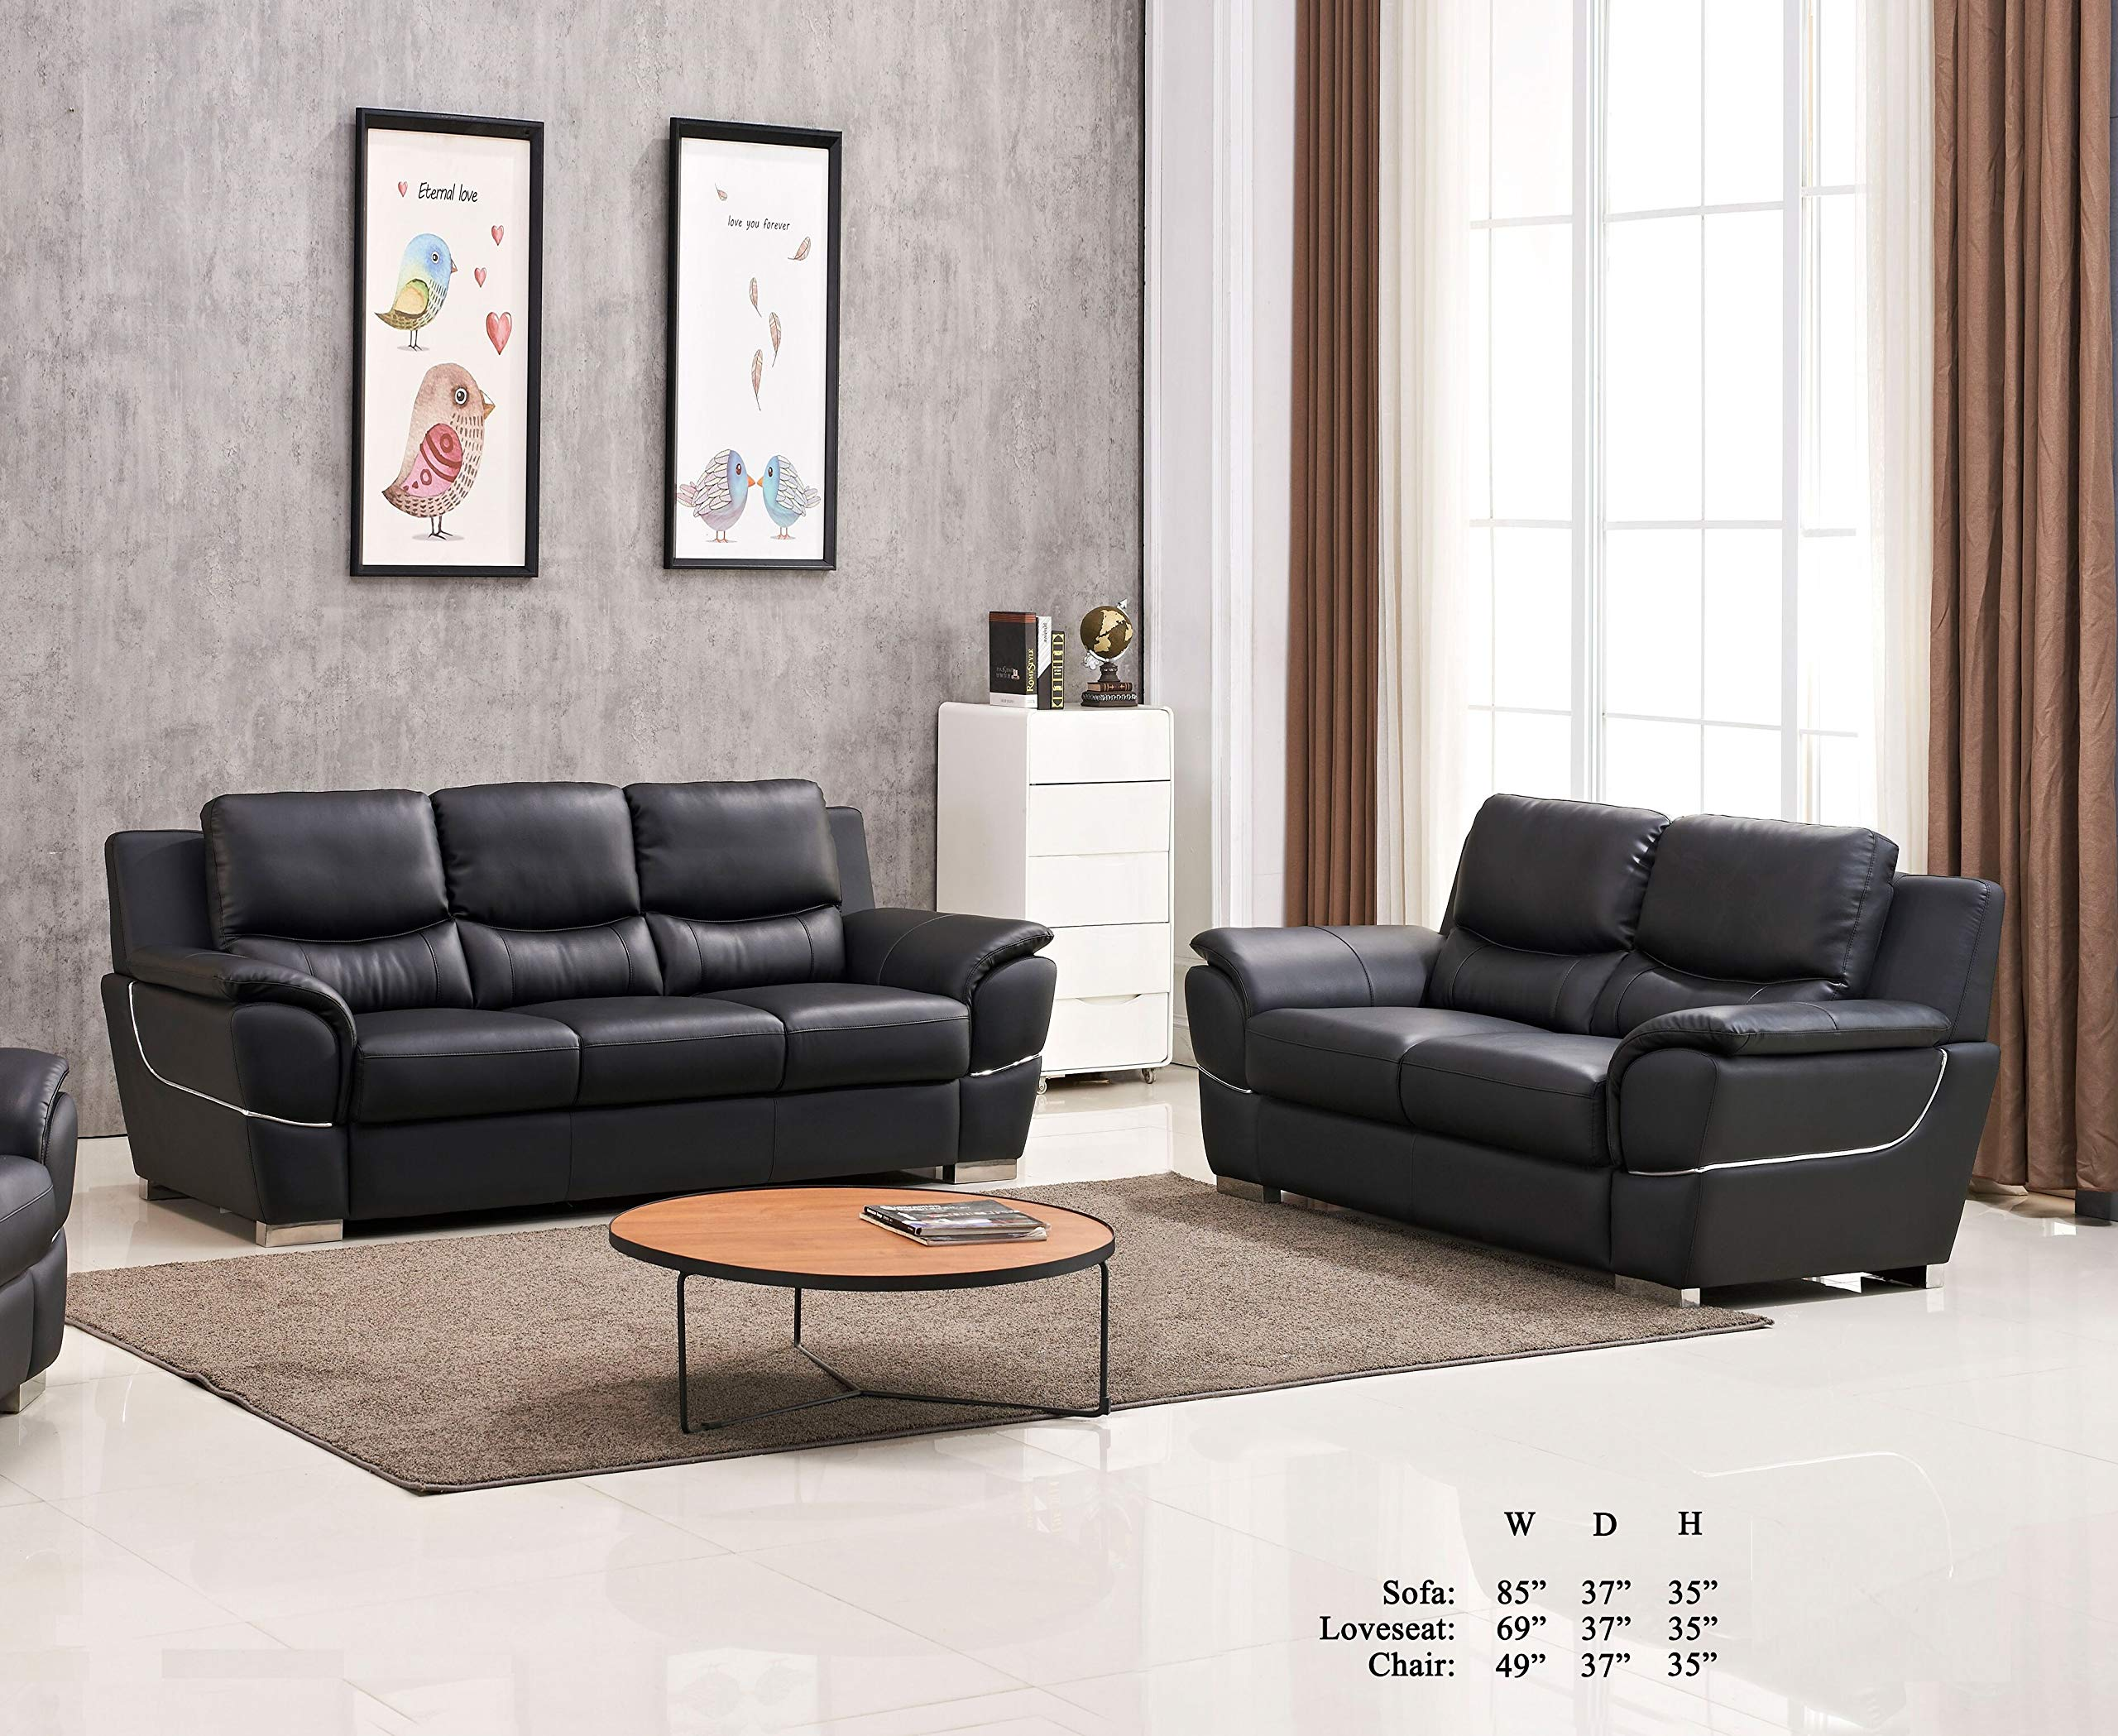 Esofastore Modern Attractive Comfort Classic Black Leather Air Sofa and Loveseat 2pc Sofa Set Living Room Furniture by Esofastore